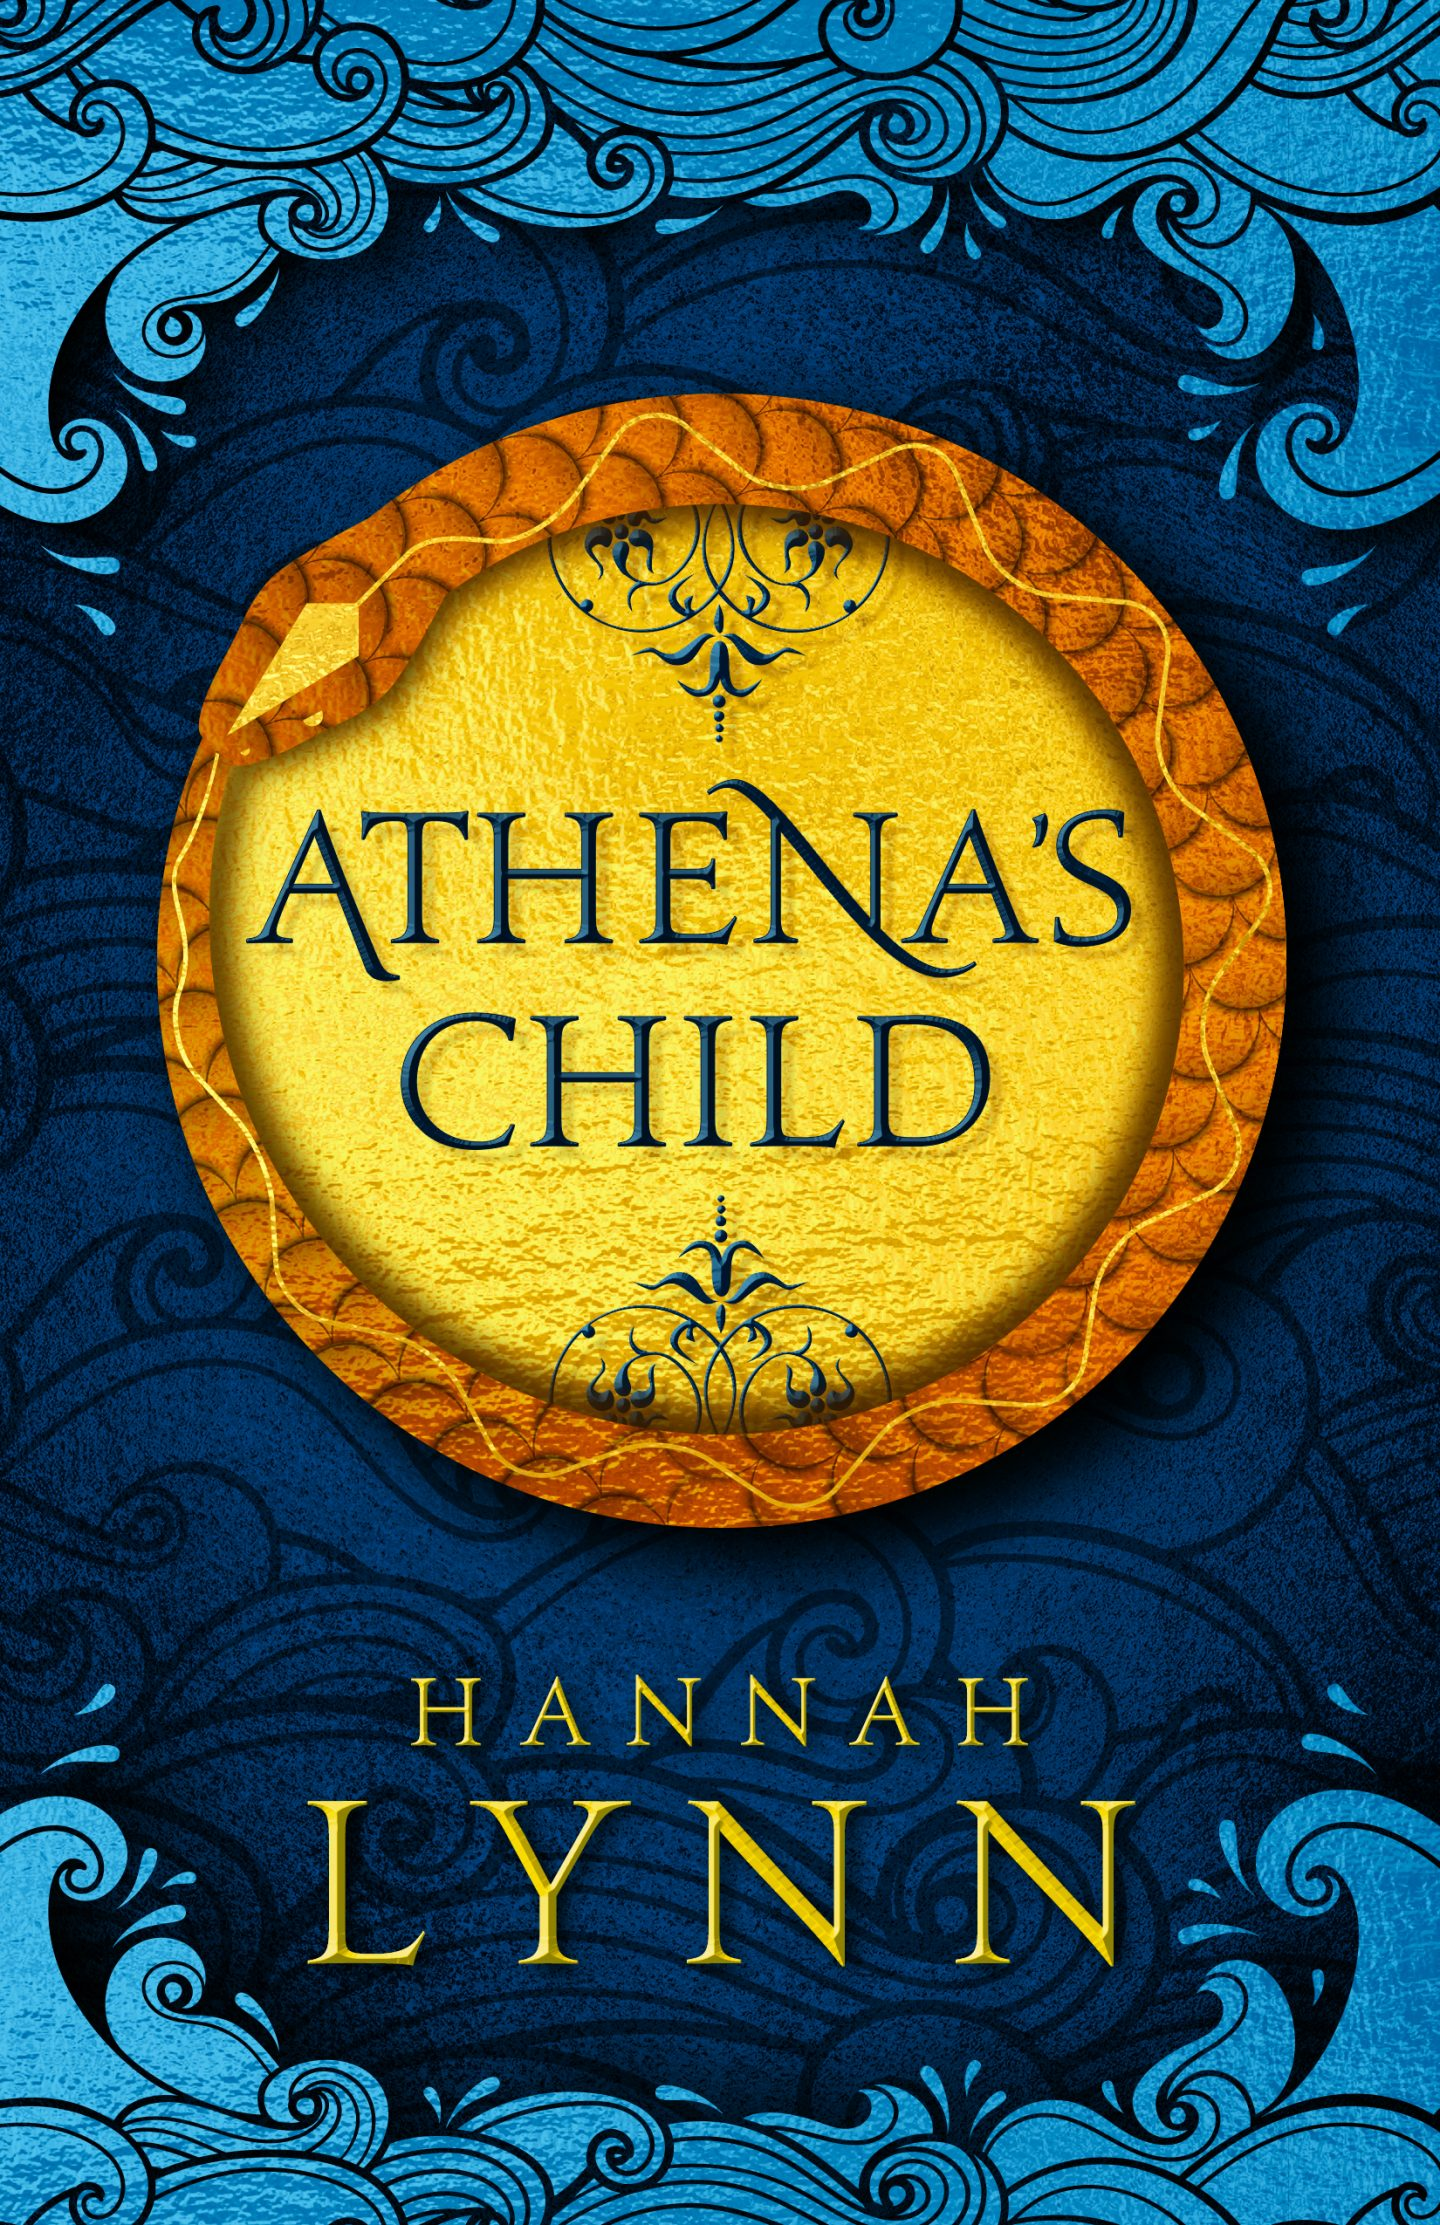 Athena's Child by Hannah Lynn Book Review